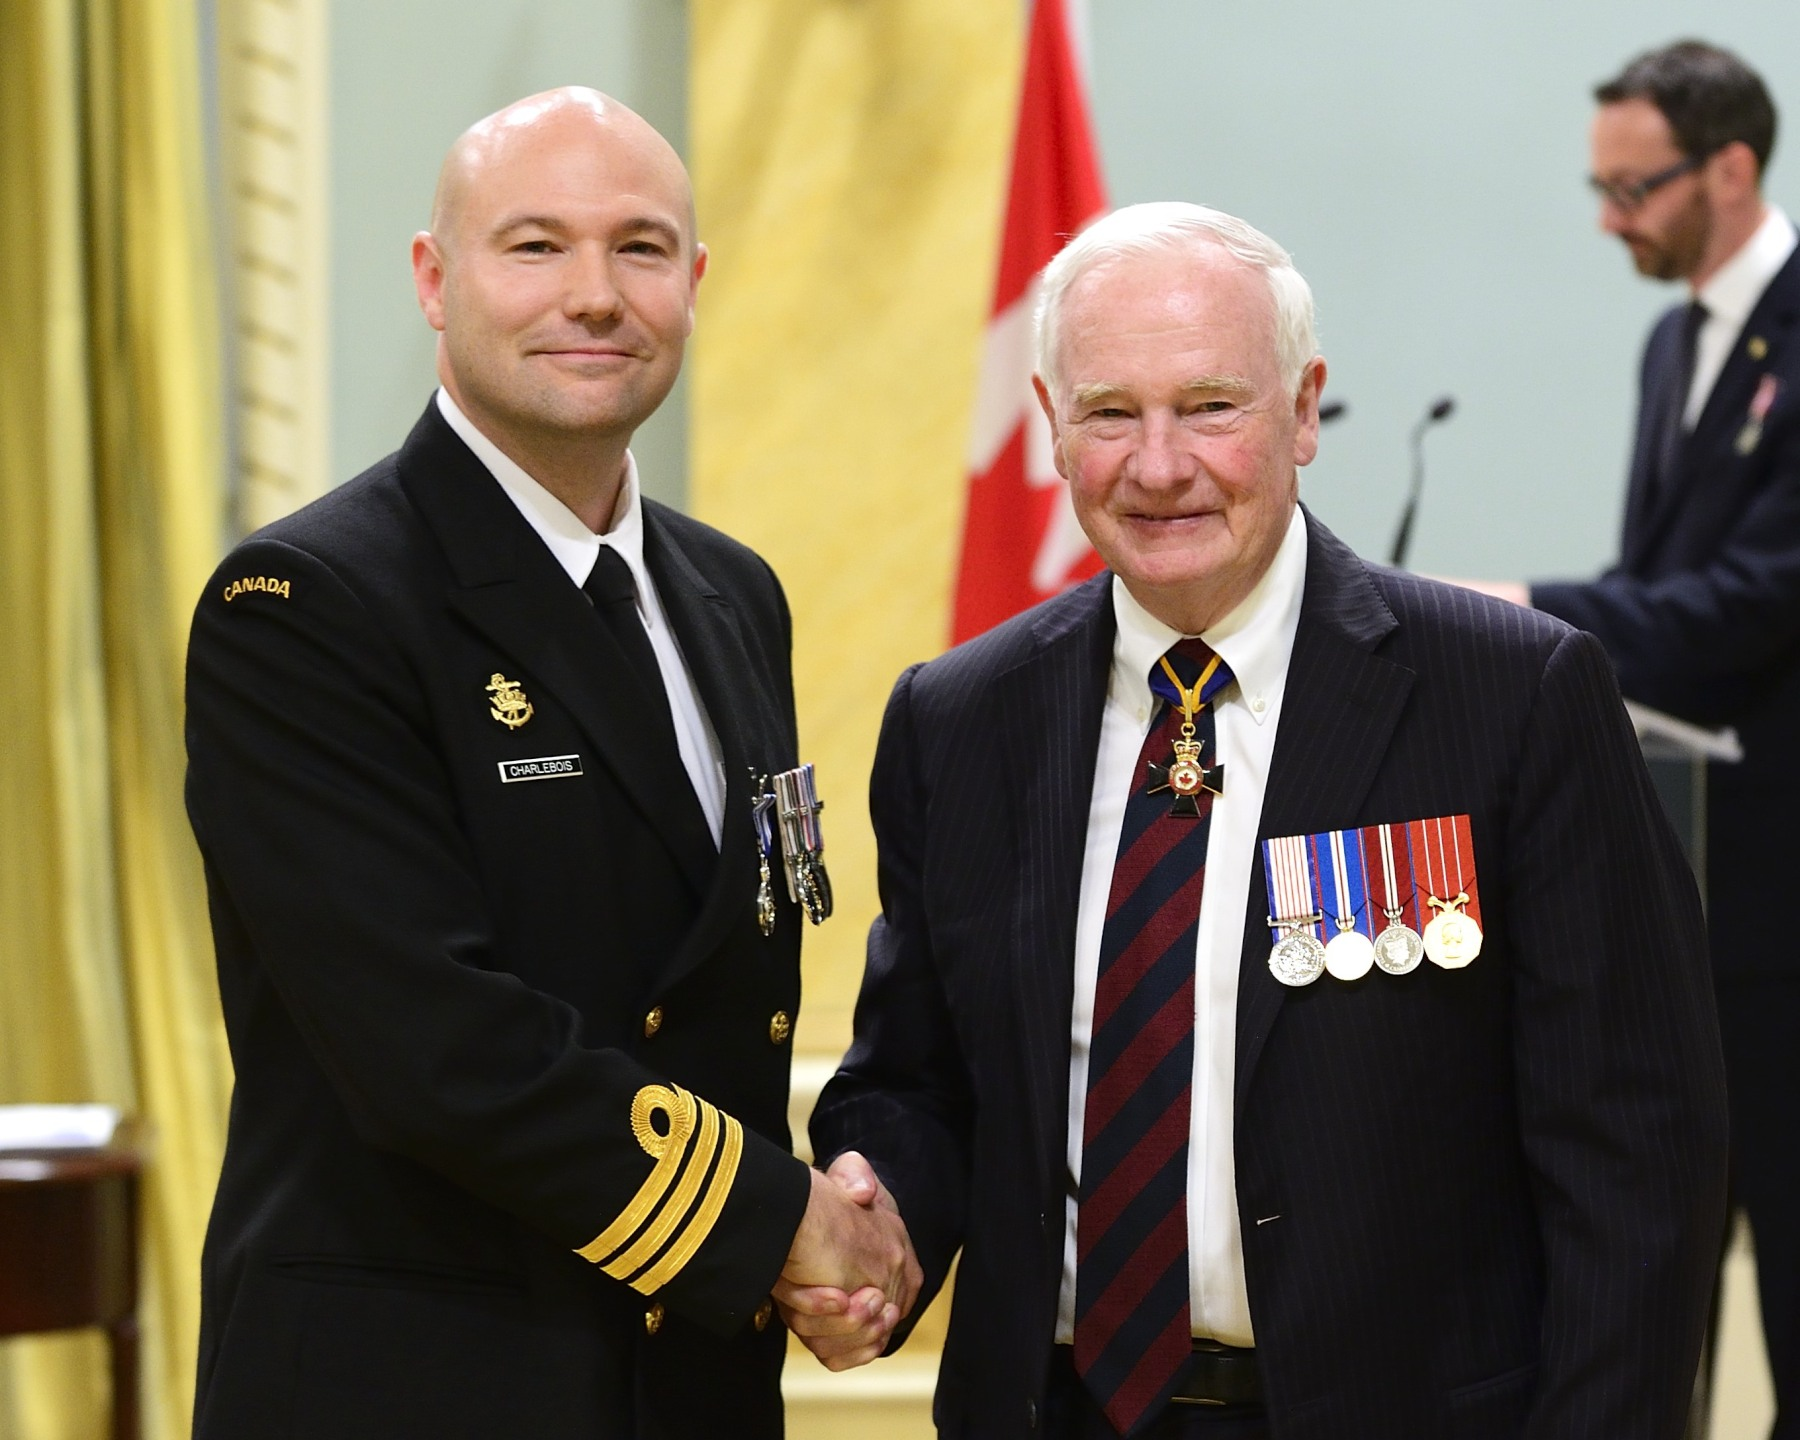 As the commanding officer of Her Majesty's Canadian Ship Regina, Commander Daniel Alan Charlebois, M.S.M., C.D. (Kingston, Ontario) was crucial to the success of two different missions between February 15 and August 3, 2014. Initially deployed in an antiterrorism role in the Indian Ocean, his ship was re-tasked on short notice to reinforce NATO allies in the Mediterranean Sea. Despite this sudden change, Commander Charlebois displayed great leadership and command presence, ensuring the crew adapted seamlessly, which brought great credit to the Canadian Armed Forces.